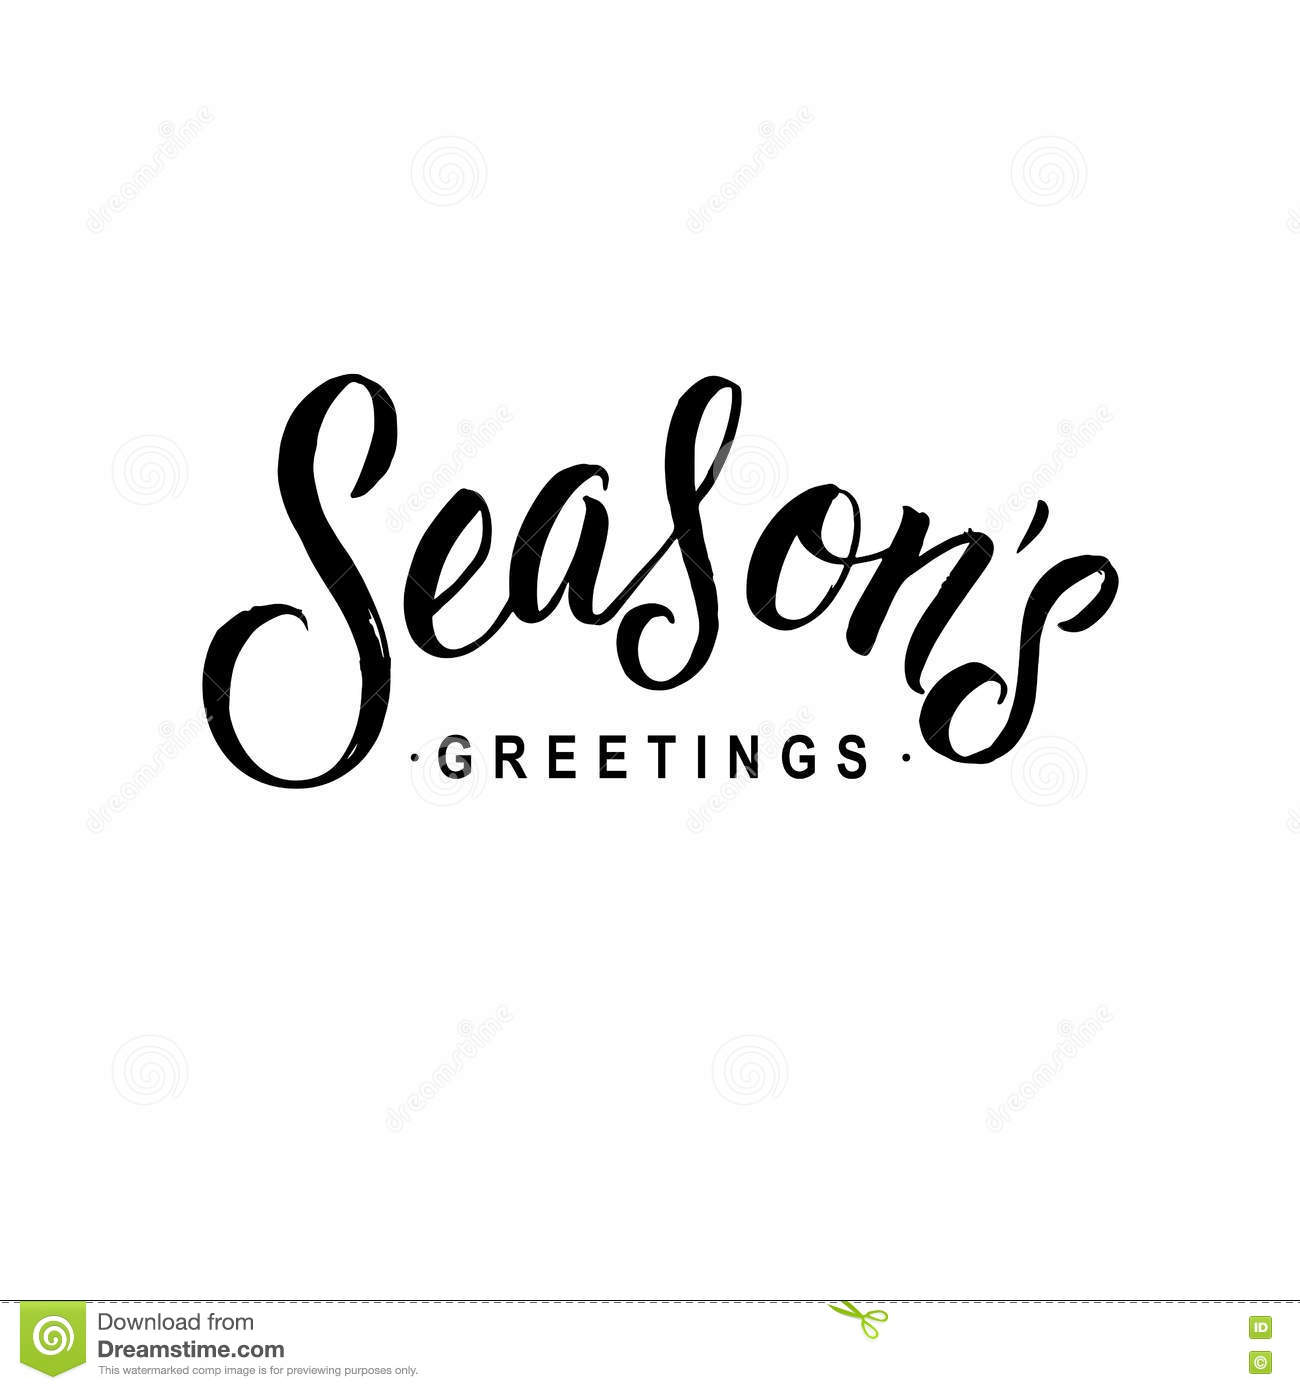 Seasons greetings calligraphy greeting card typography on seasons greetings calligraphy greeting card typography on background m4hsunfo